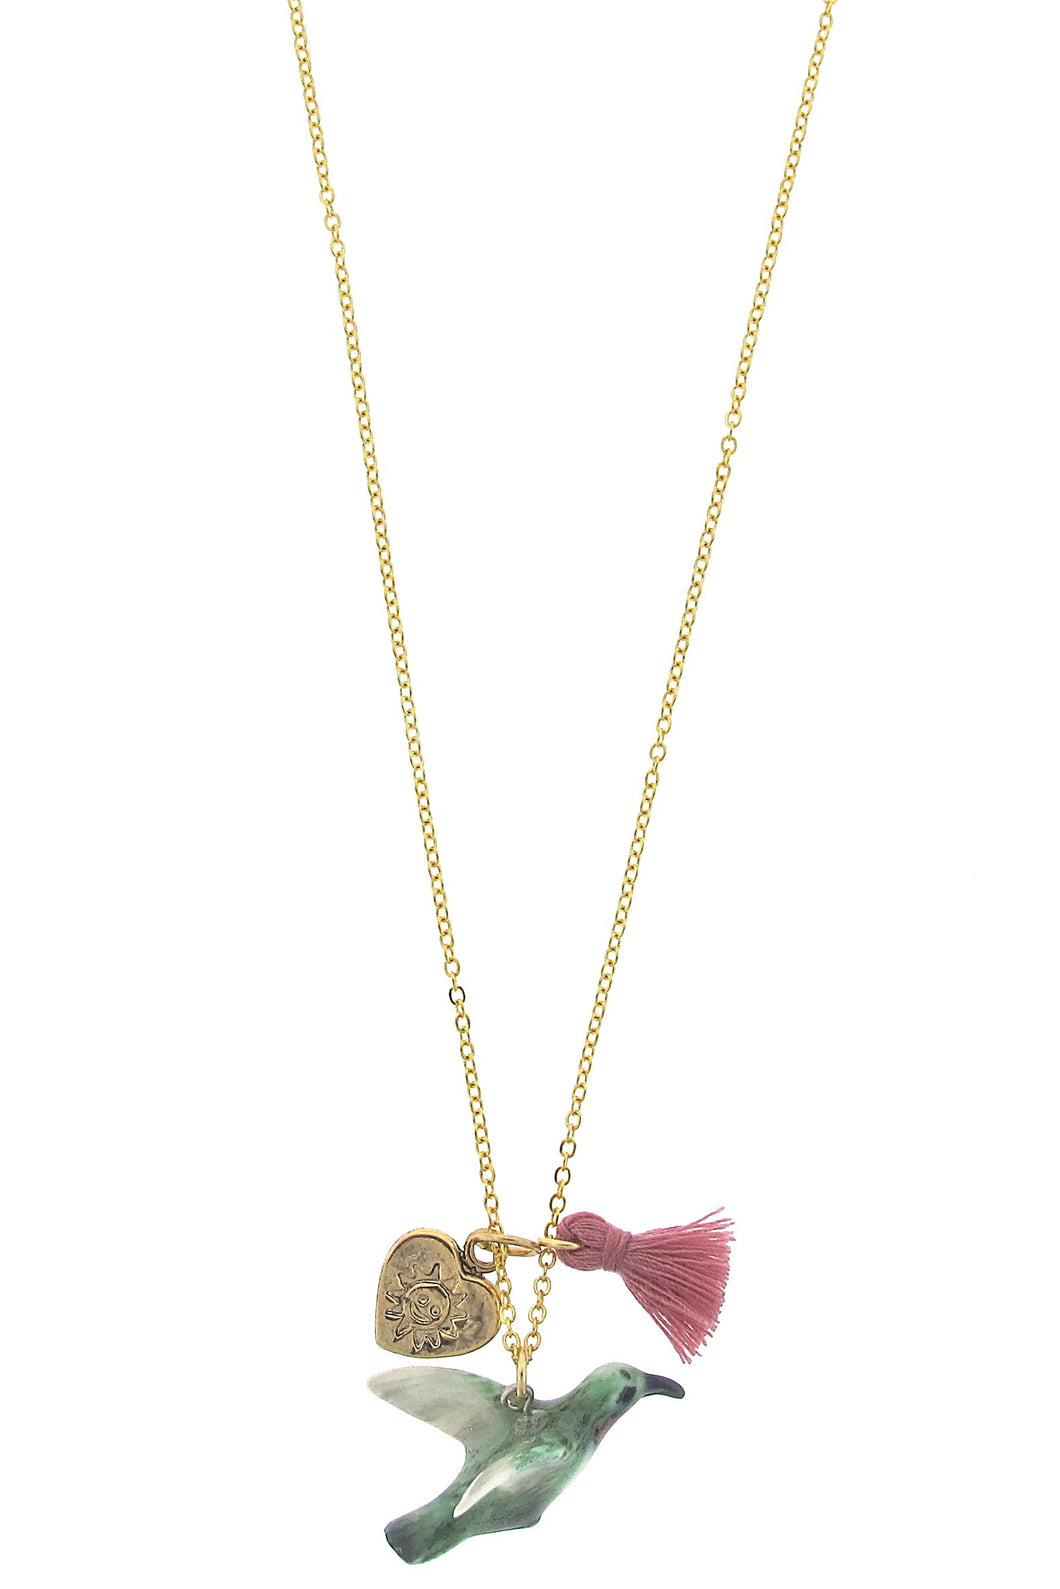 Sparrow Lil' Critters Necklace